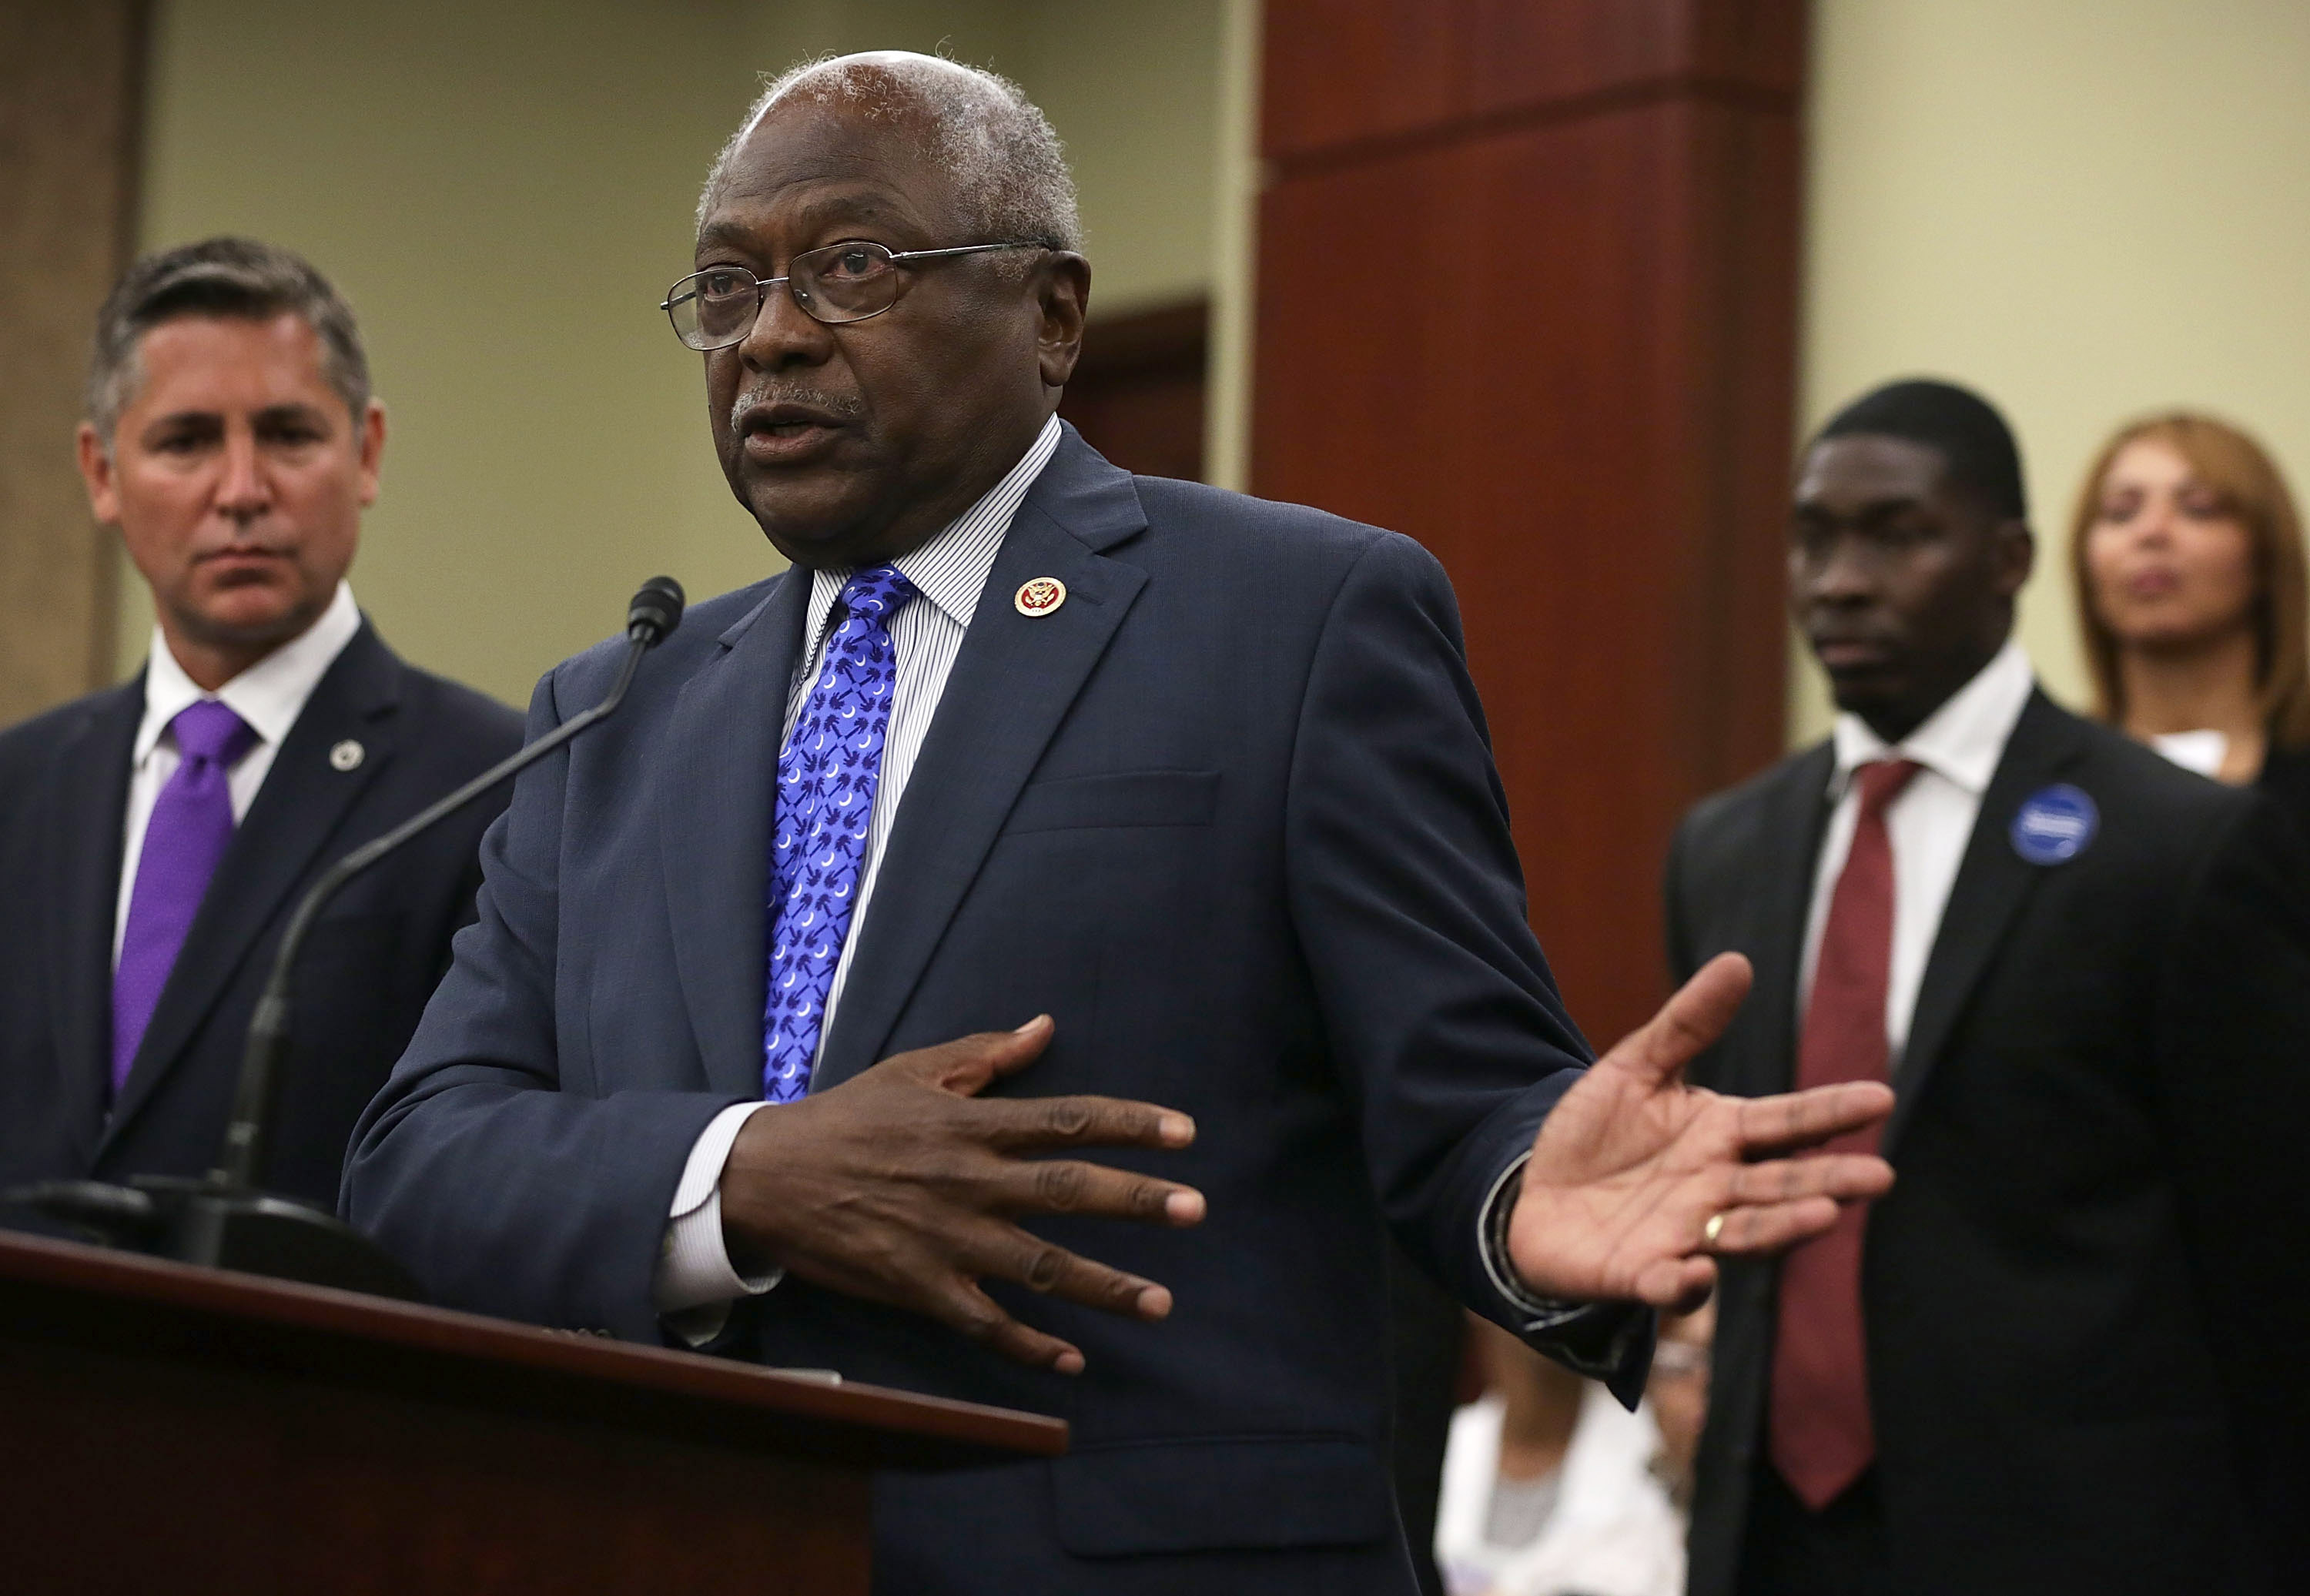 U.S. House Assistant Democratic Leader James Clyburn (D-SC) (2nd L) speaks as President of the Brady Campaign to Prevent Gun Violence Dan Gross, and Andre Duncan (3rd L), nephew of Myra Thompson, one of the victims of the June 17 shooting at the Emanuel AME Church in Charleston, S.C., listen during a news conference July 8, 2015 on Capitol Hill in Washington, DC.                       (Alex Wong--Getty Images)